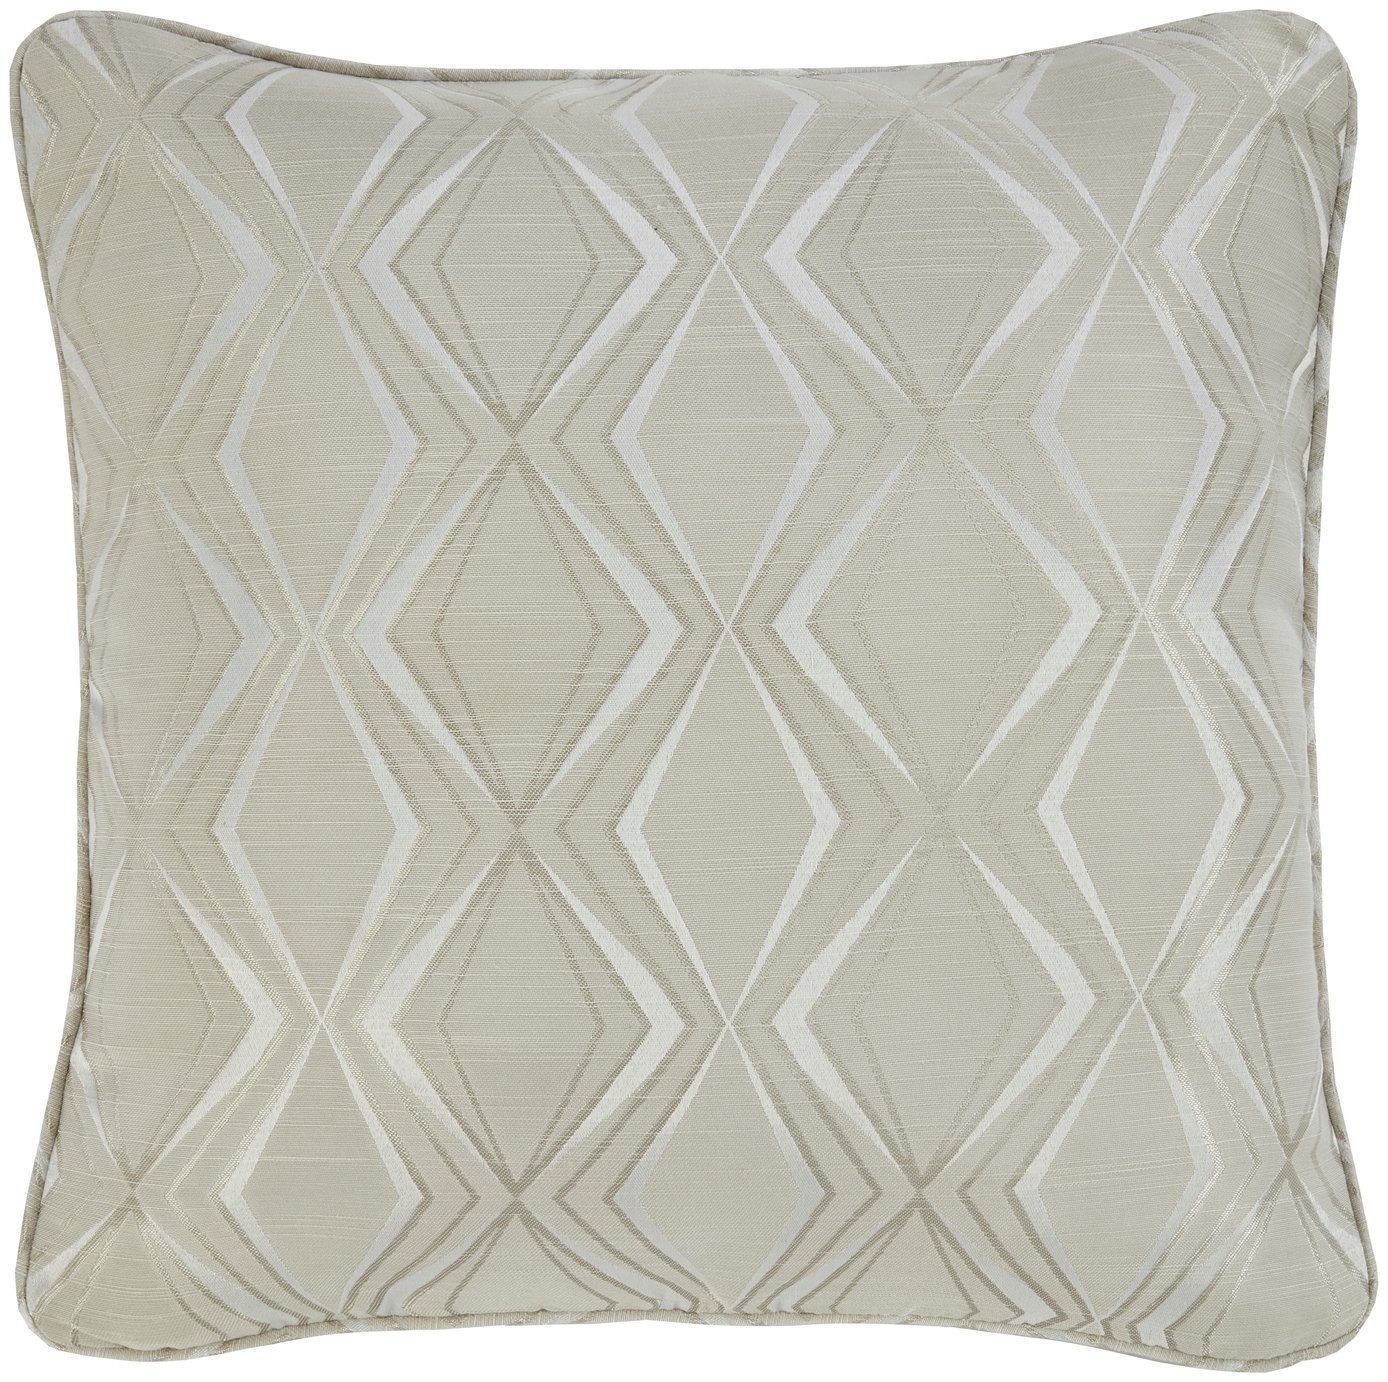 Julian Charles Ritz Cushion - Natural